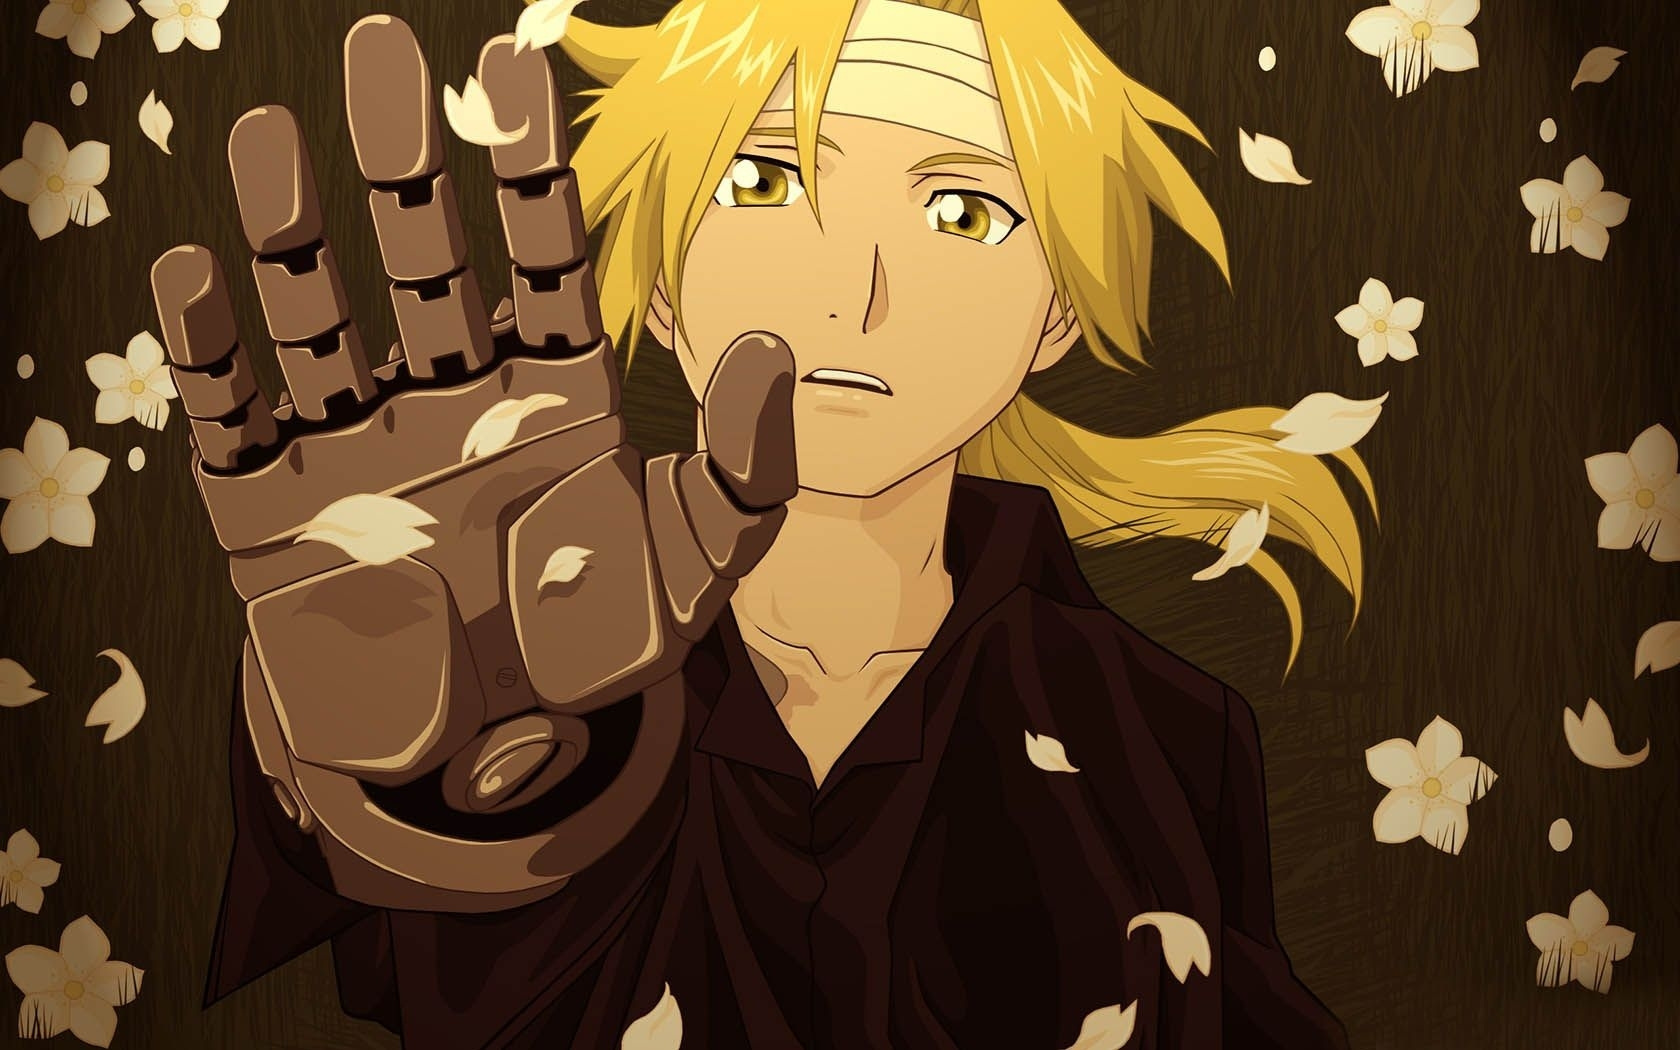 pics of fma | fullmetal alchemist brotherhood, edward elric desktop